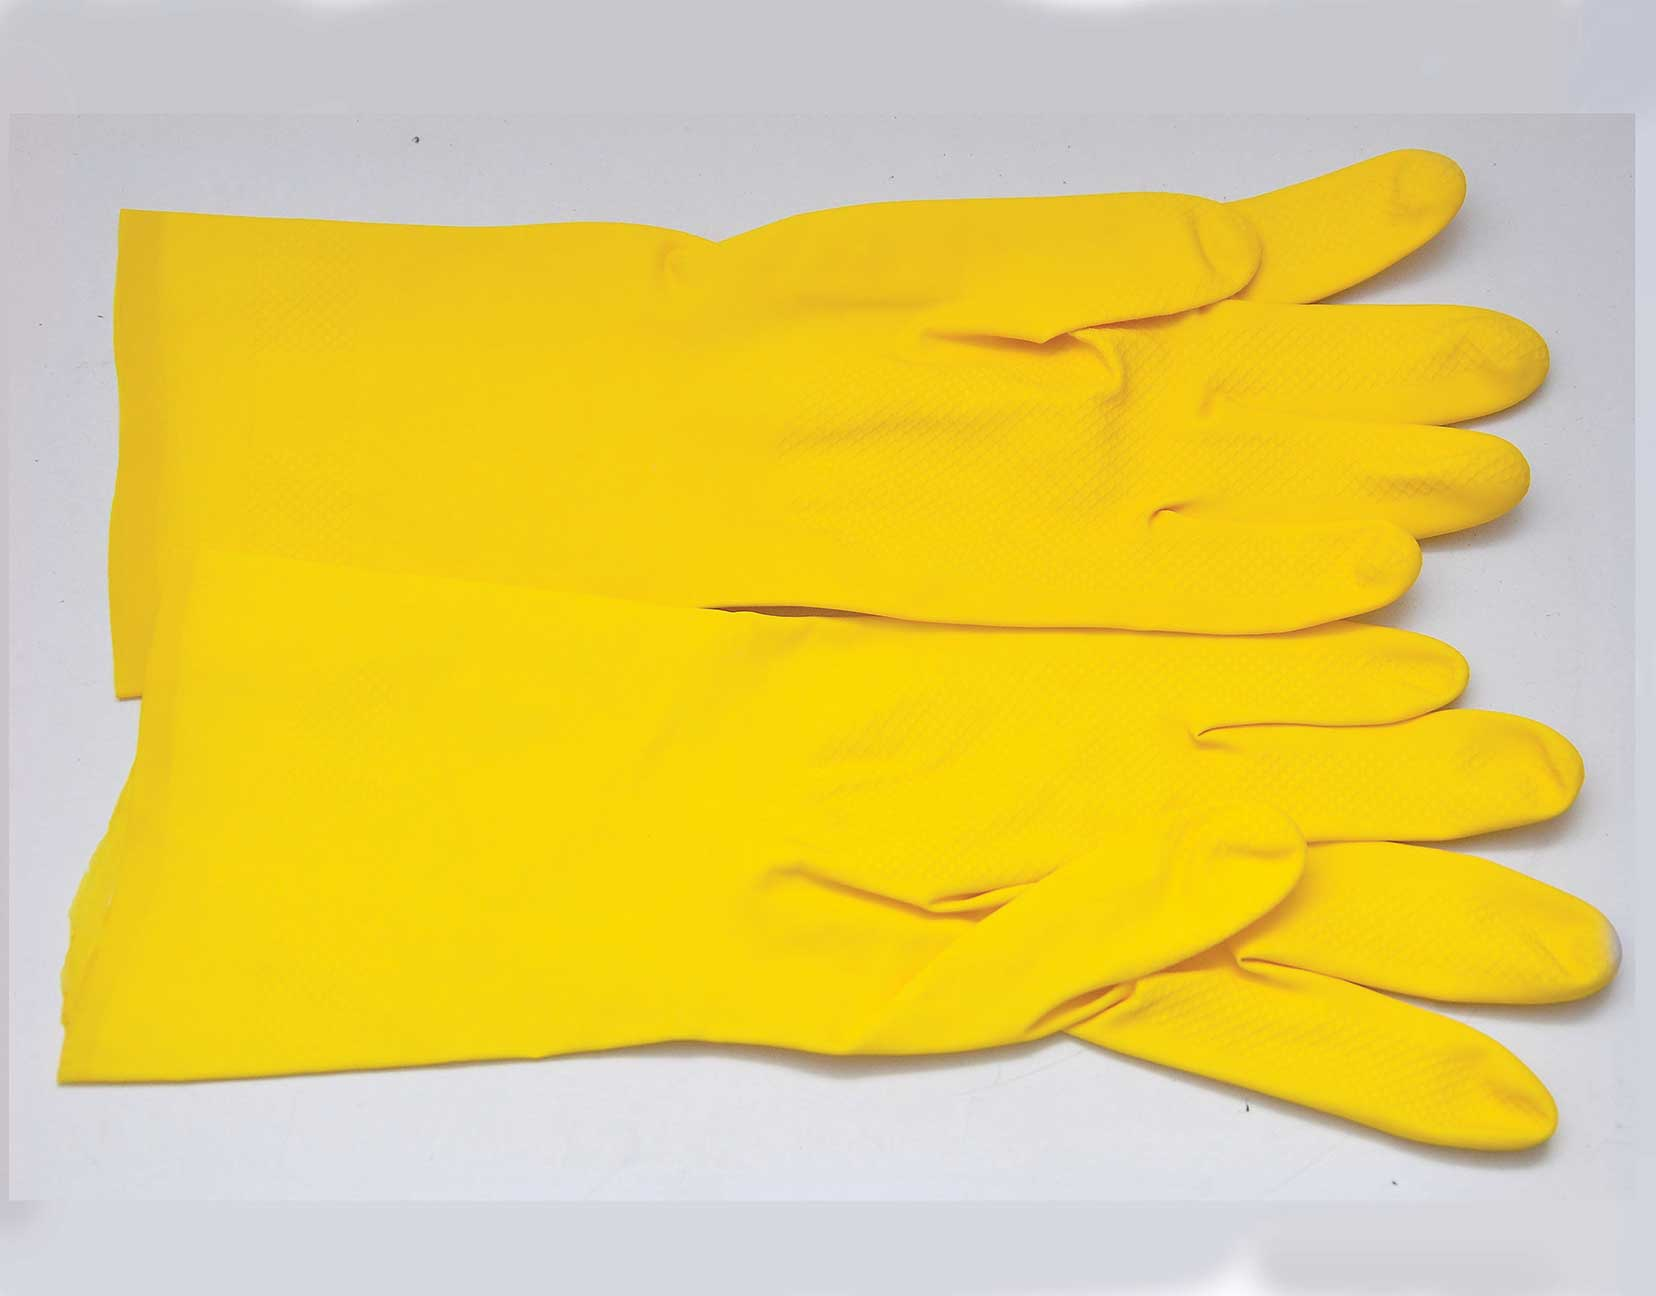 055_Hand Gloves (Examnation)